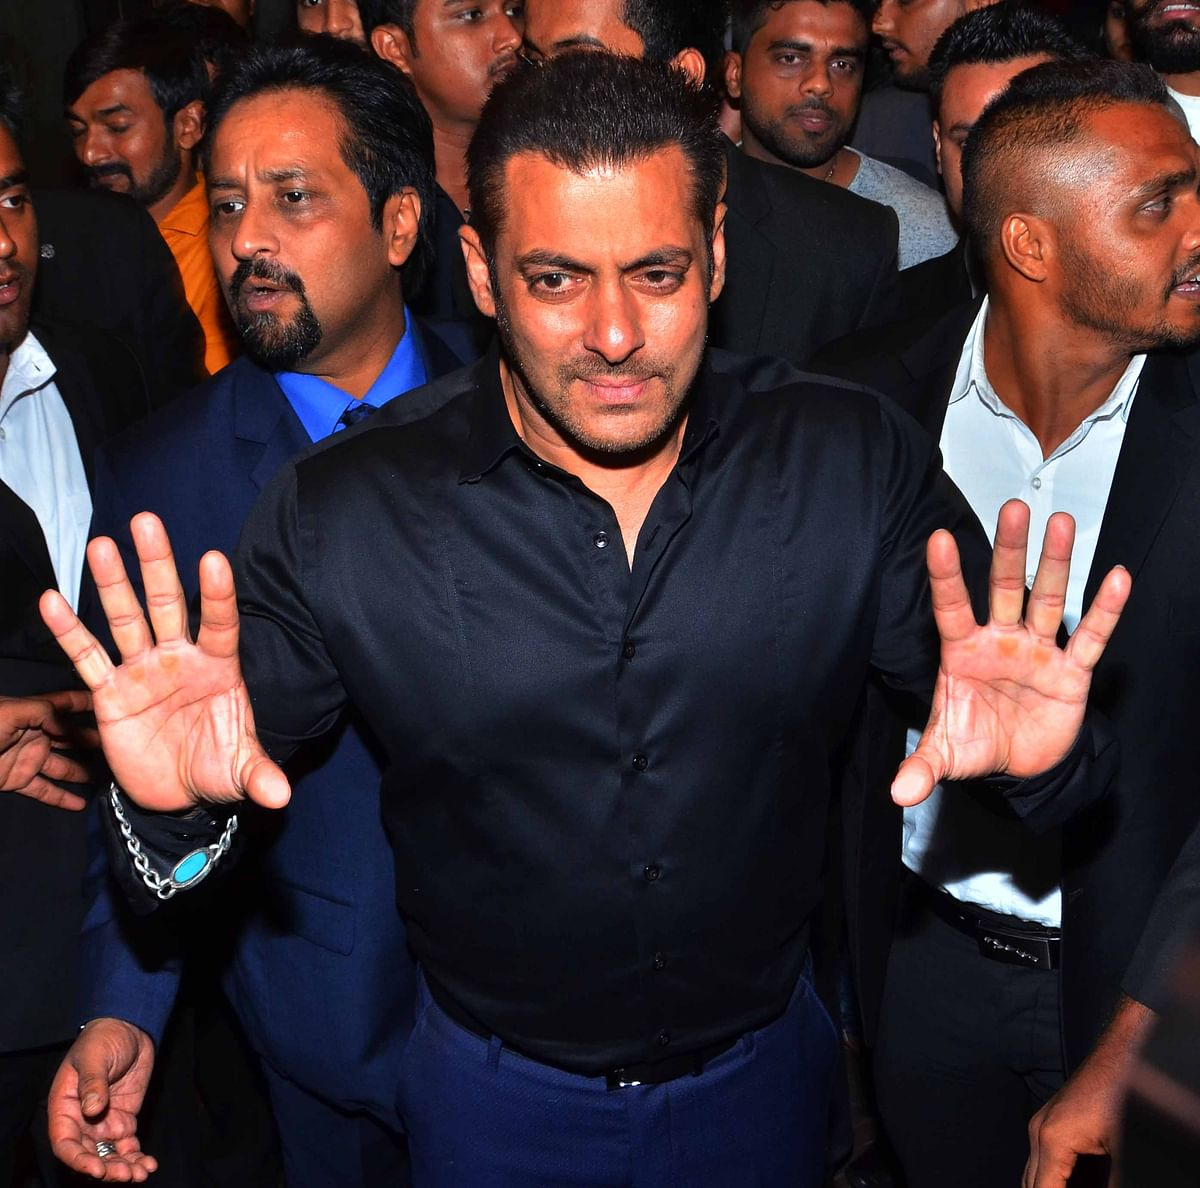 Salman Khan, at a media interaction, compared his rigorous shooting for next film, <i>Sultan</i> to a 'raped woman' drawing a lot of flak. (Photo: Yogen Shah)